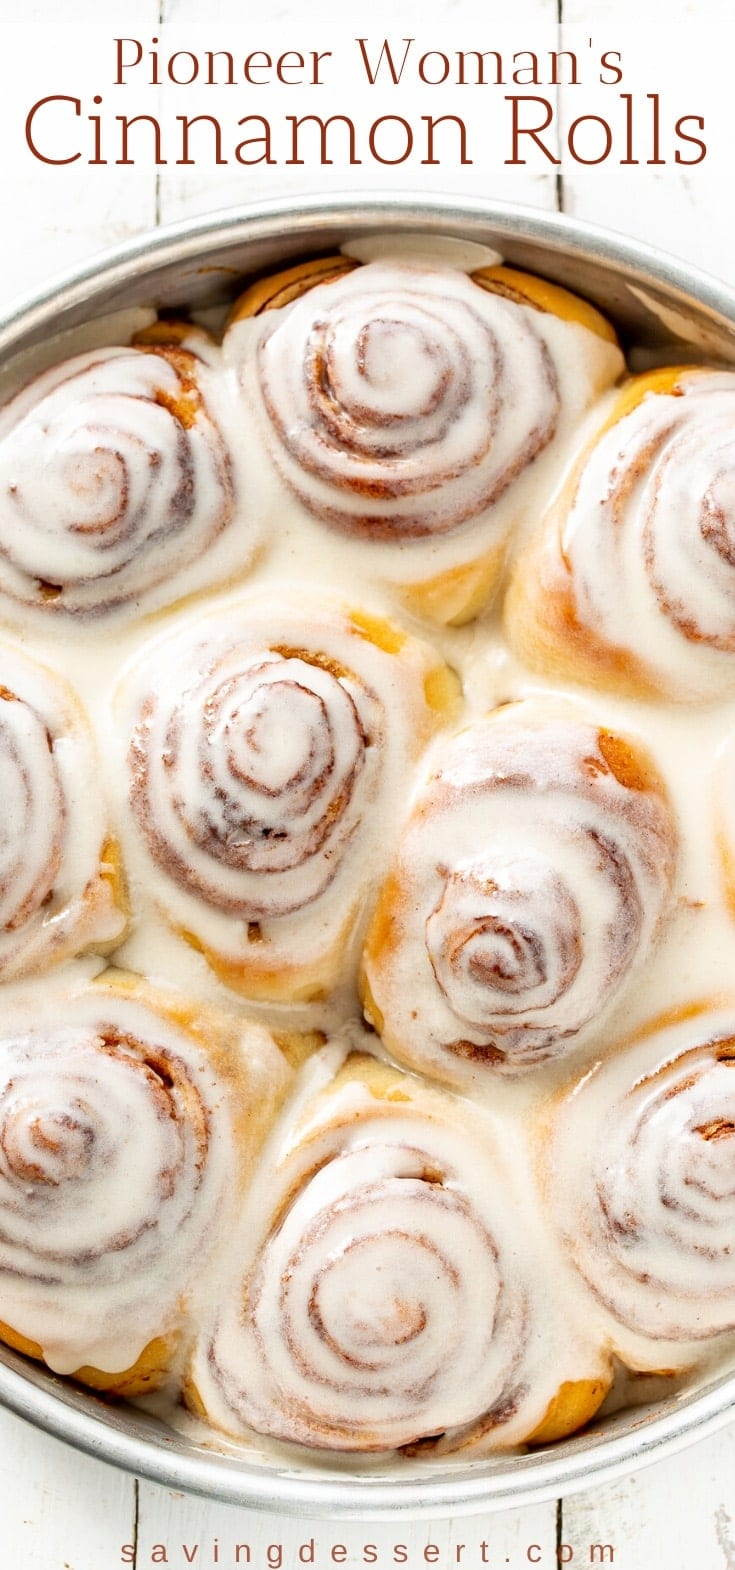 A close up of a pan of Pioneer Woman's Cinnamon Rolls